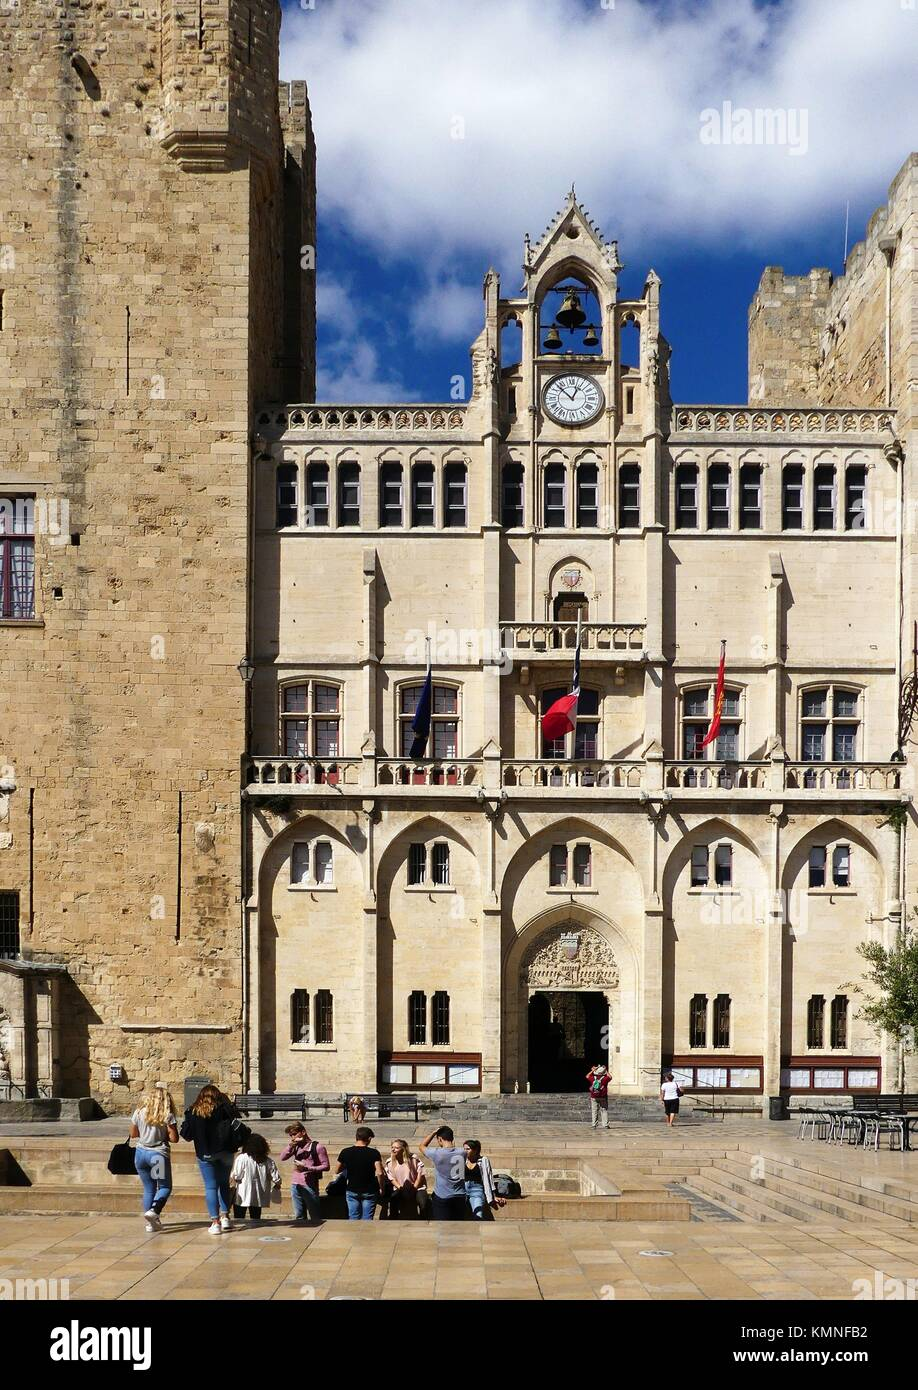 Teens eat their lunch in front of the Archbishop's palace - which is the city hall- in Narbonne, France - Stock Image